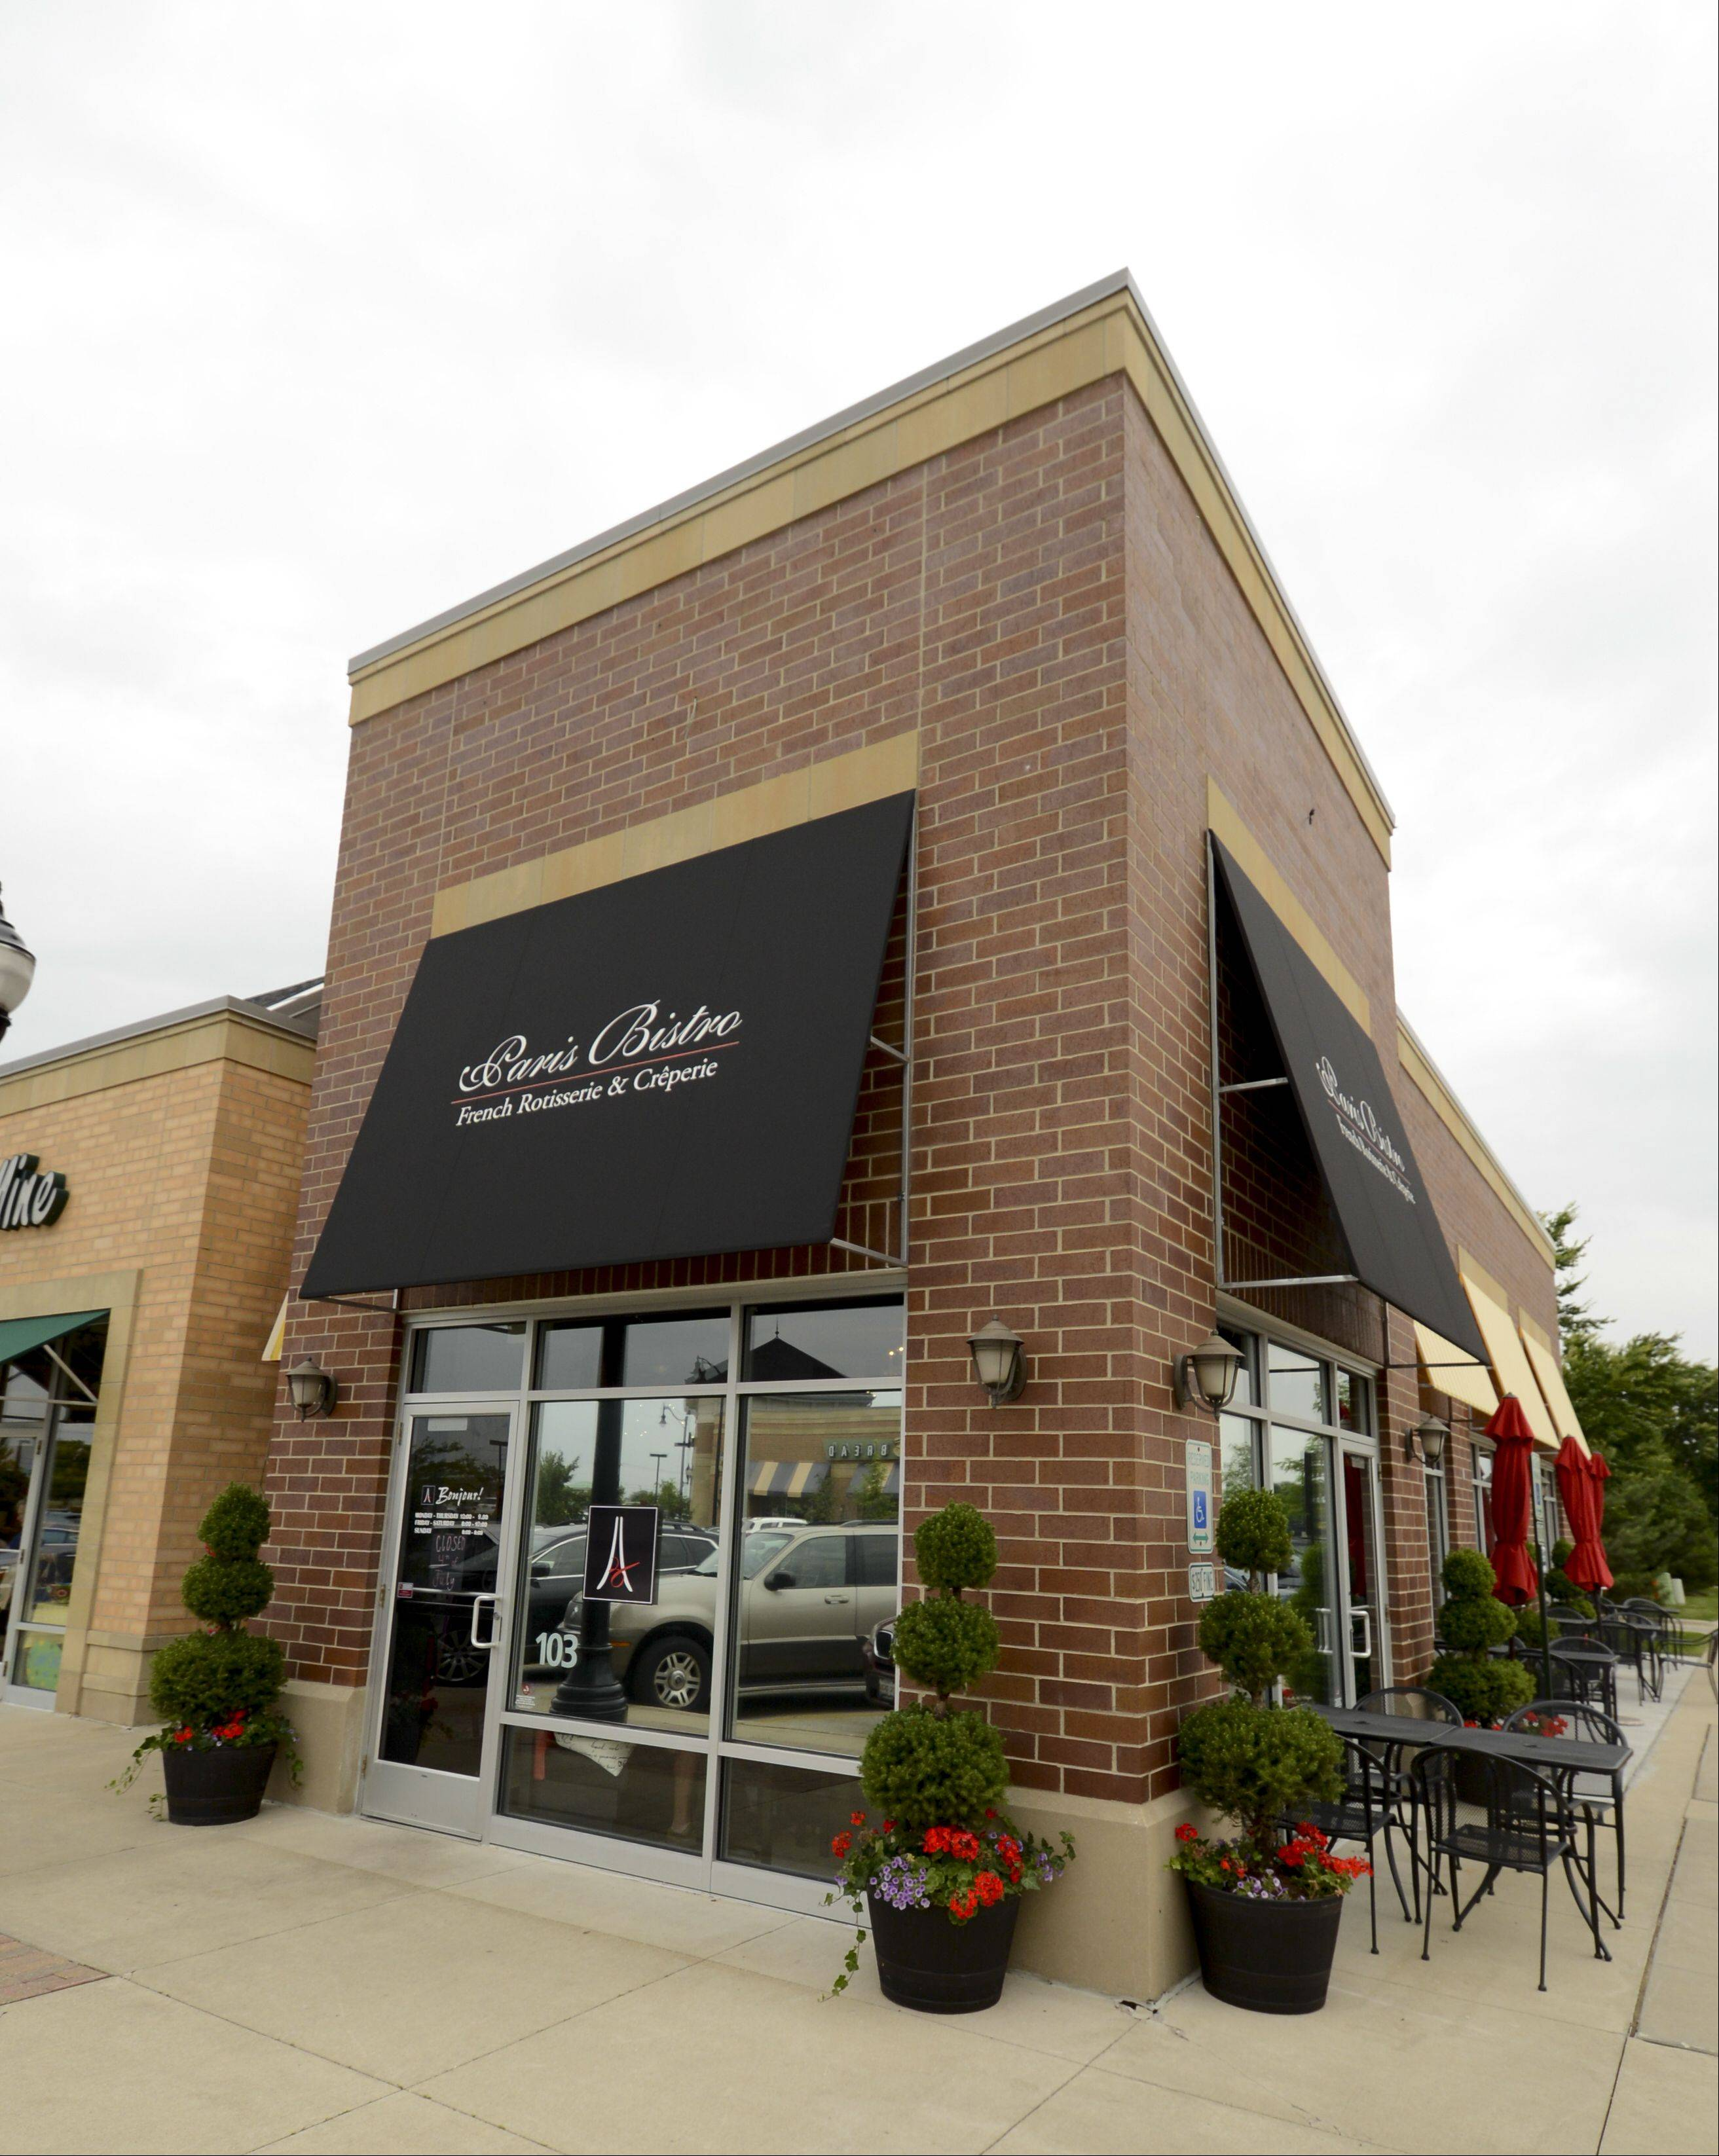 Paris Bistro opened on Showplace Drive in Naperville earlier this year.